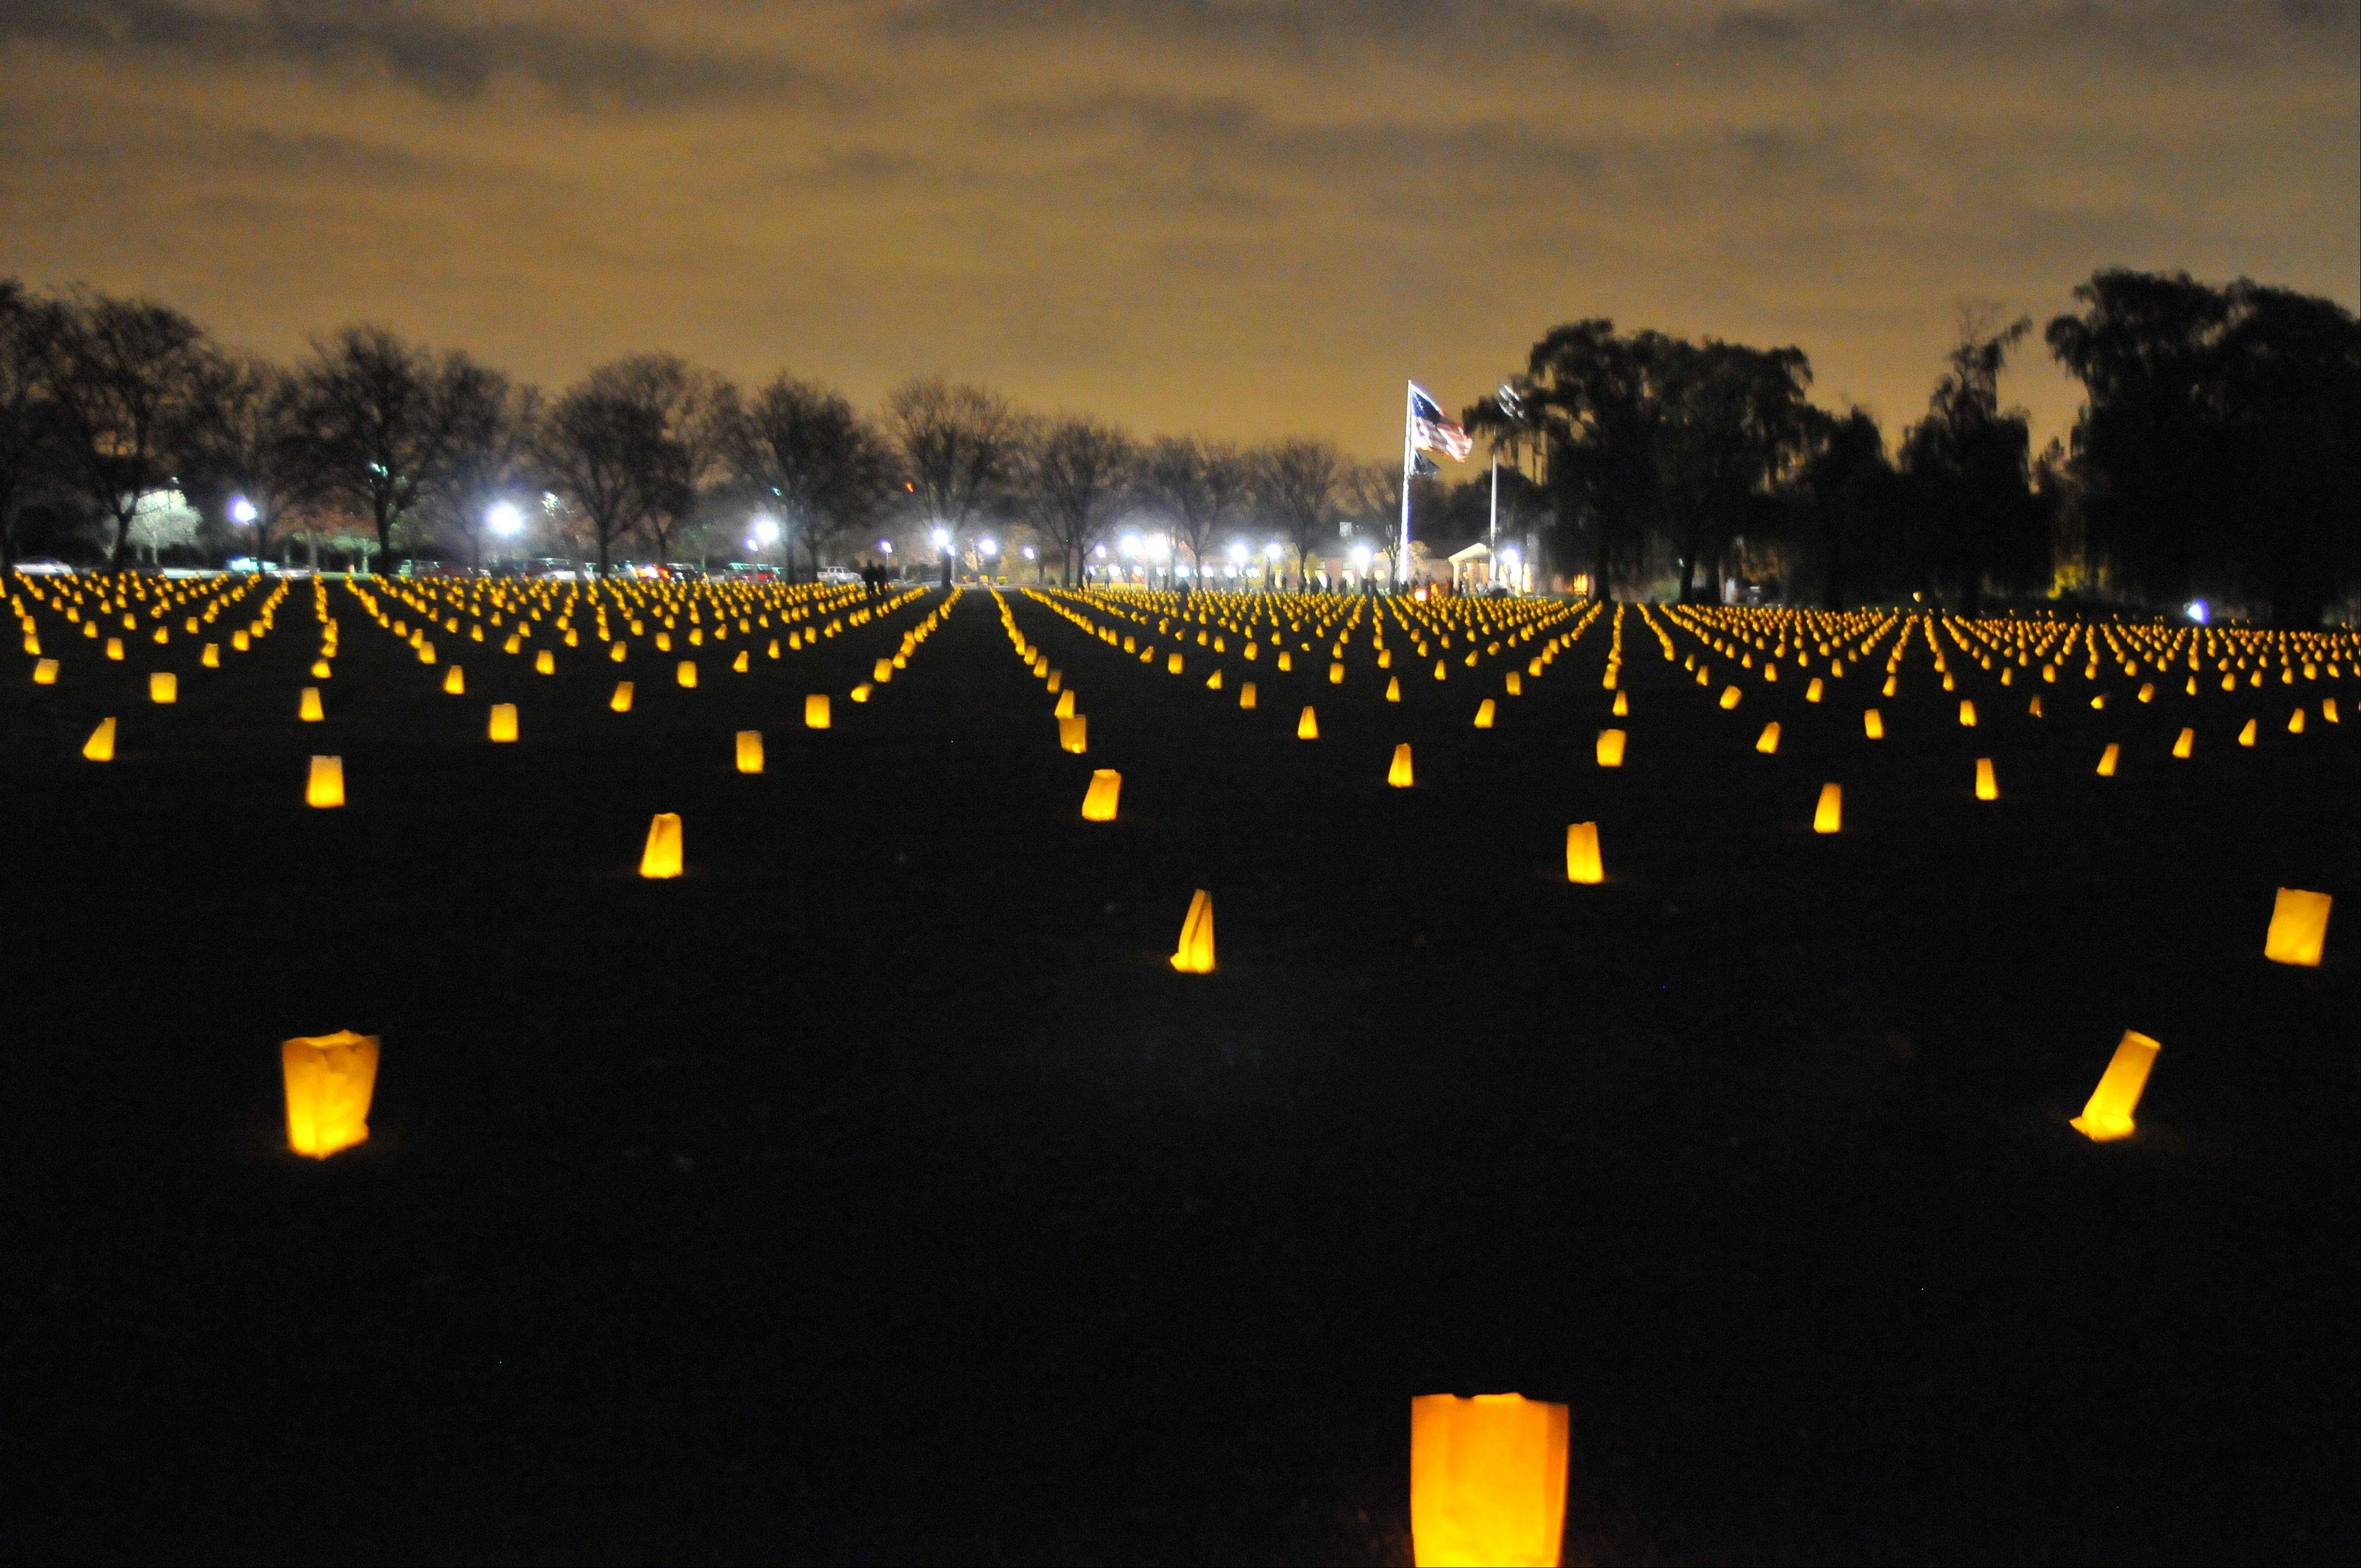 More than 2,000 candles in honor of U.S. veterans will light up the night at Cantigny Park and the First Division Museum as part of the annual Luminary Tribute.